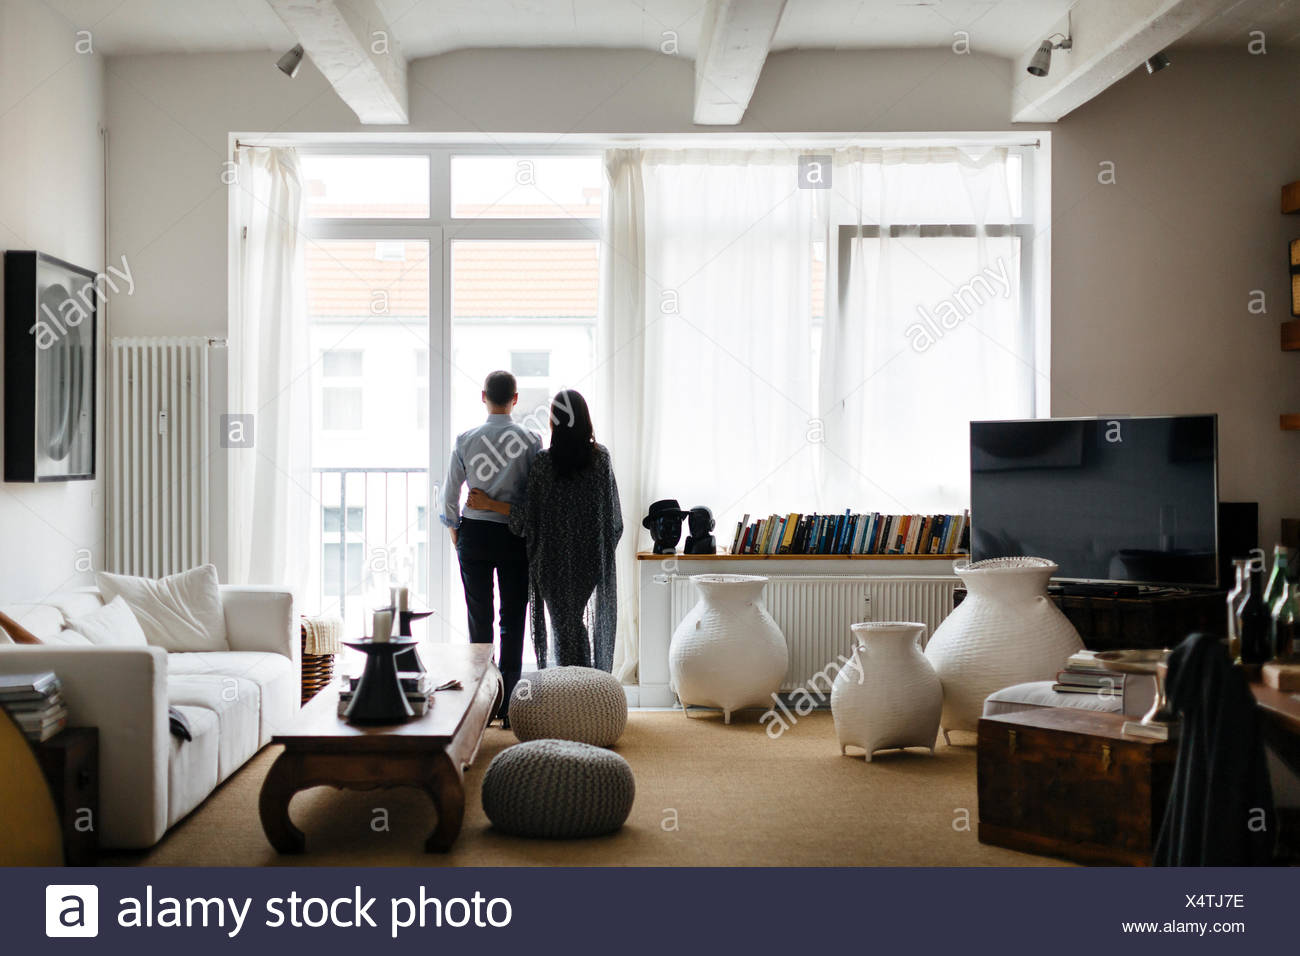 Germany, Couple looking through window in living room Stock Photo